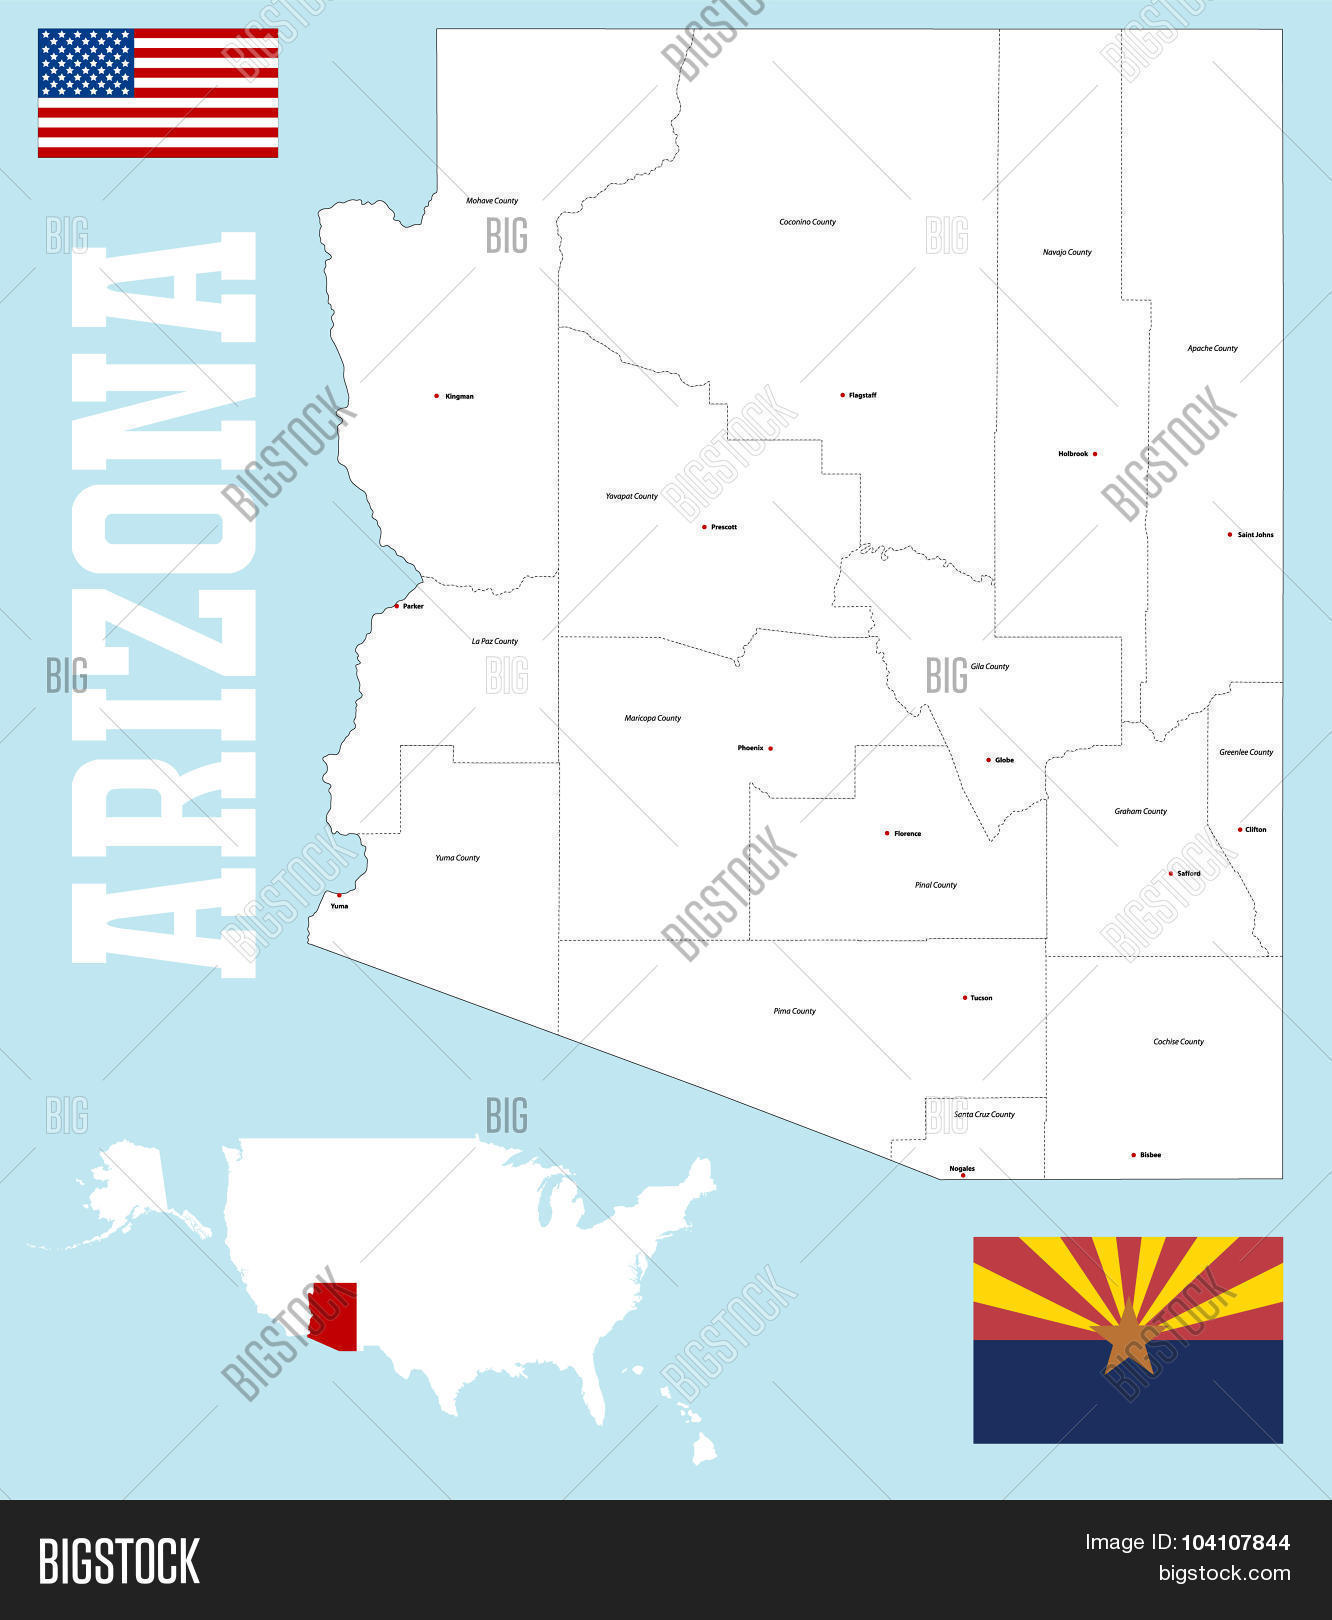 🔥 Arizona county map